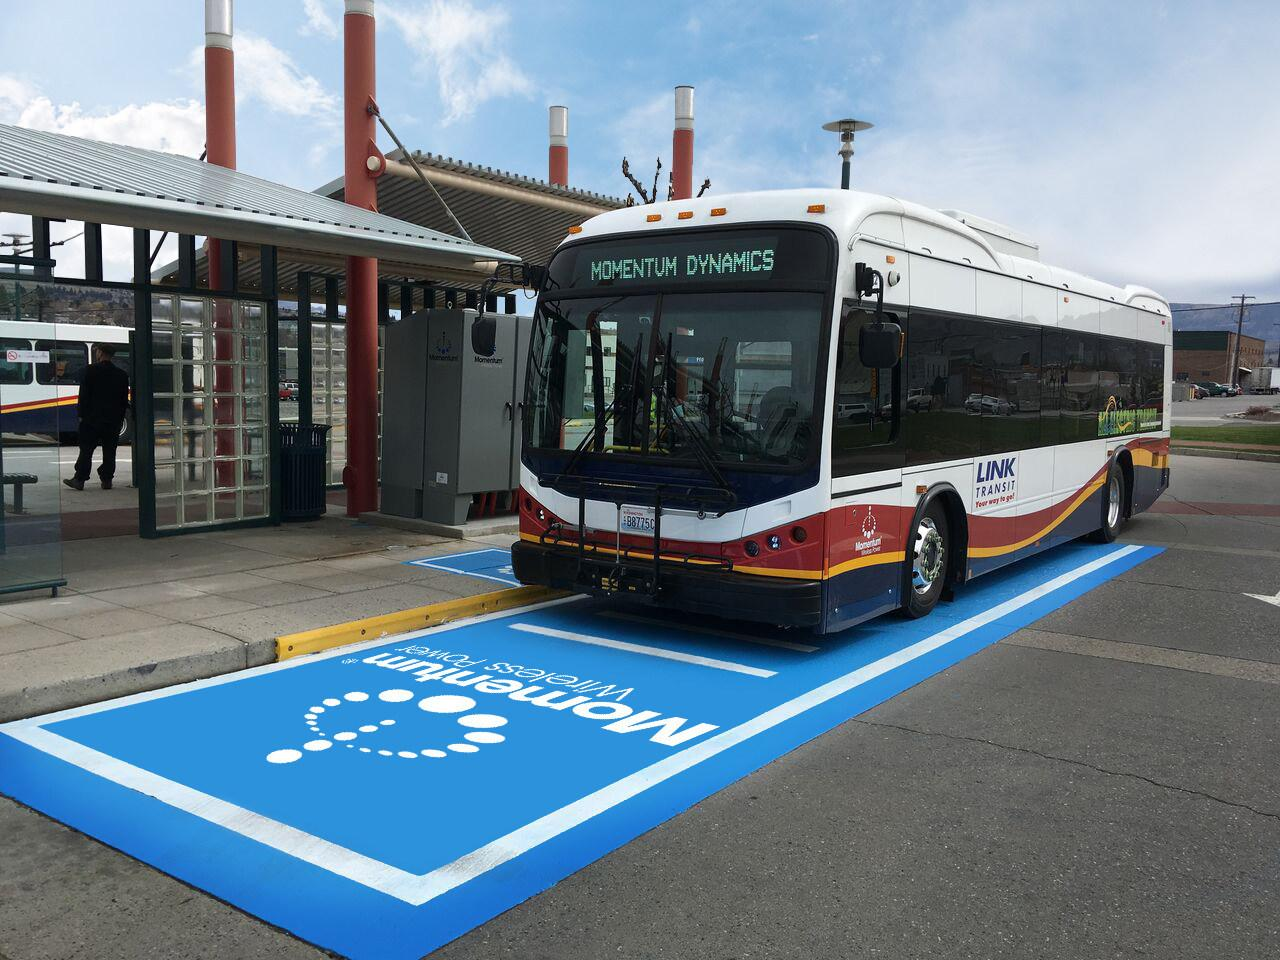 Momentum's 200 kW wireless charging system automatically starts topping up the Transit Link e-bus when parked in the blue area